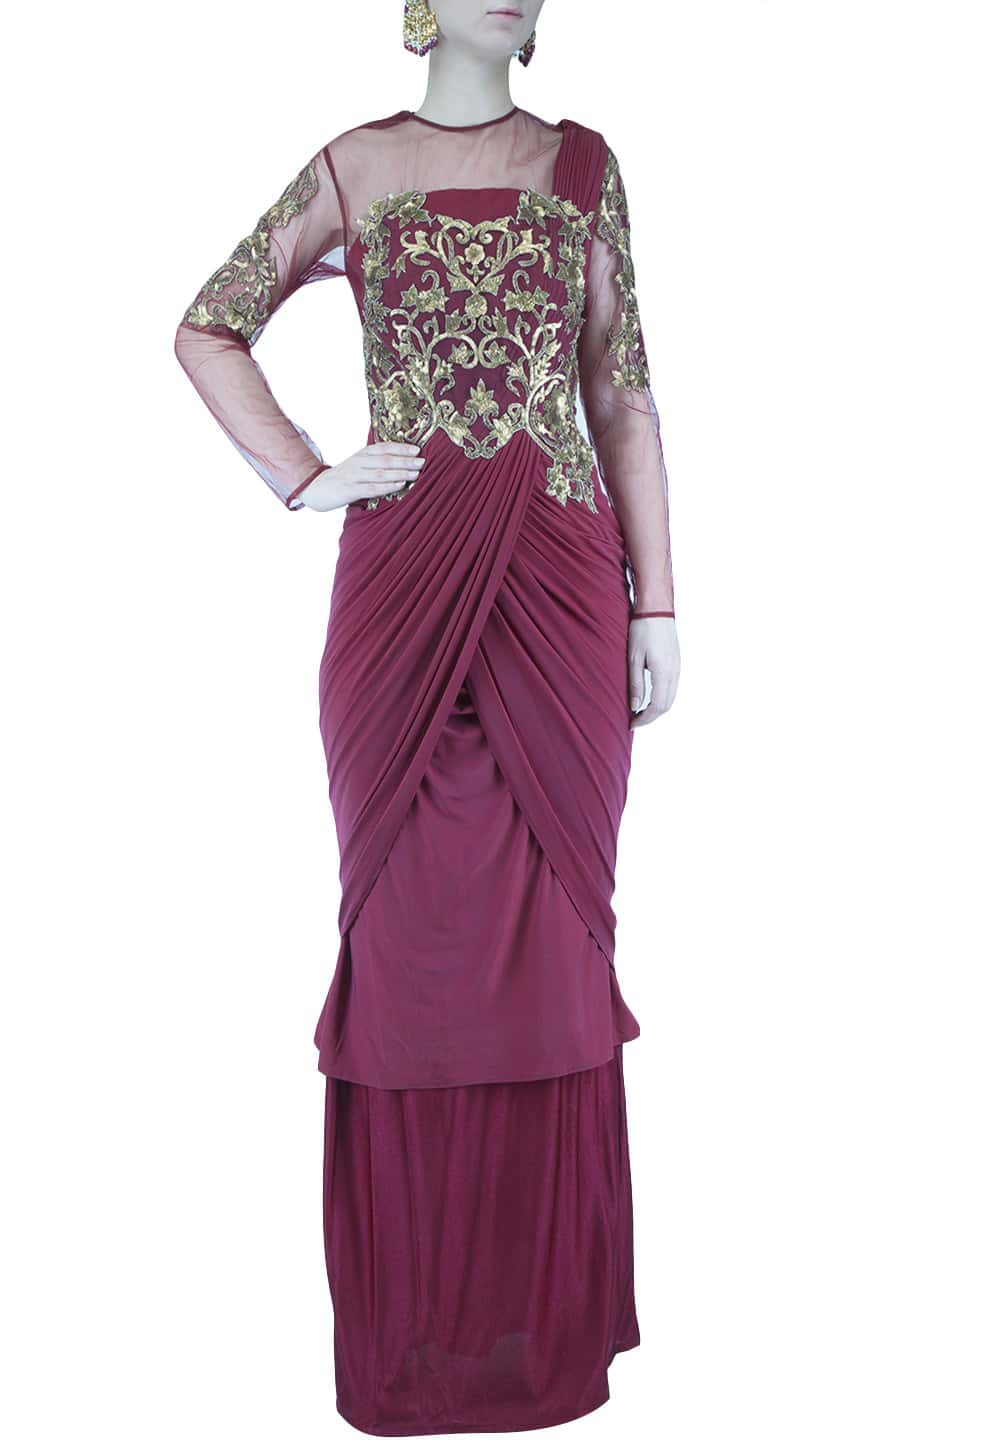 Wine Sequins Embroidered Saree Gown Available Only At Ibfw